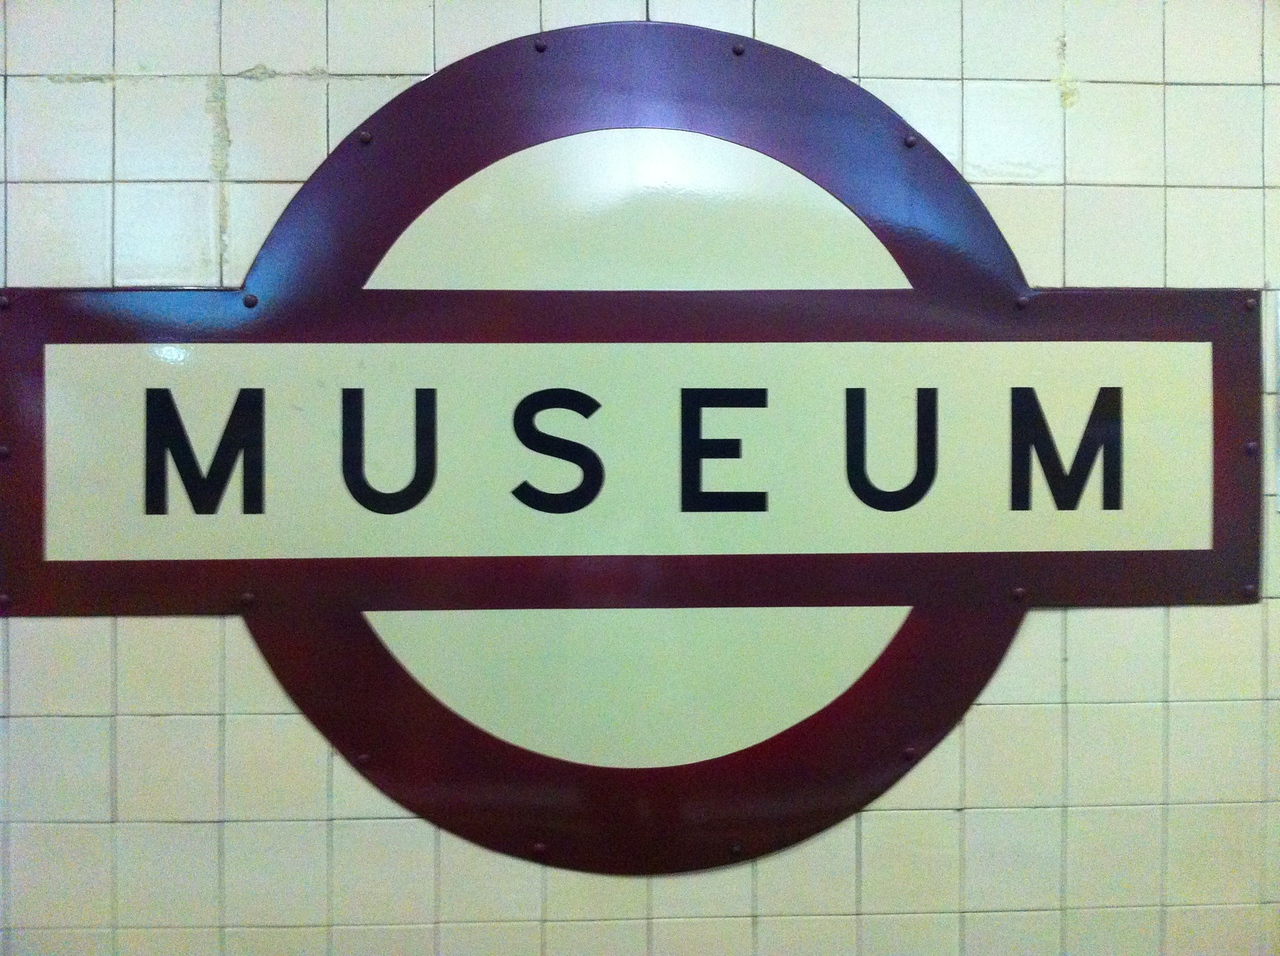 Old-fashioned roundels at train stations